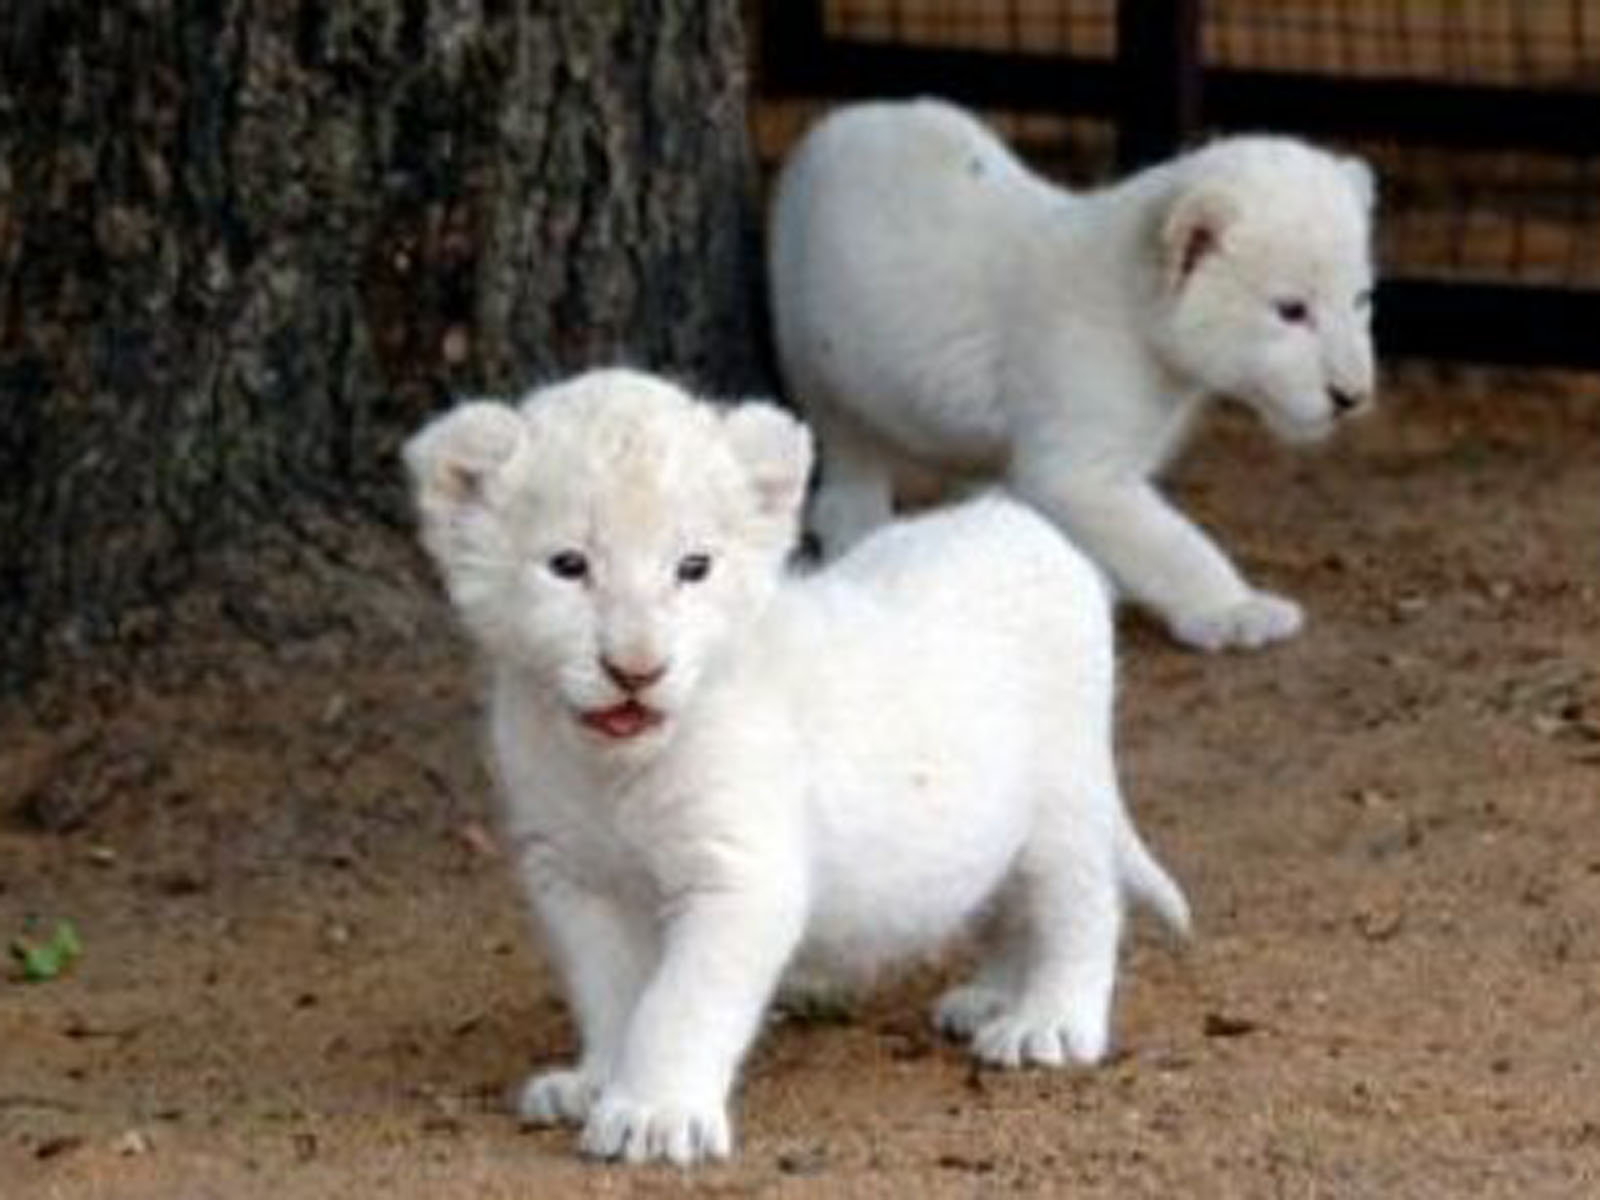 Baby White Lion Pictures 2013 Wallpaper 1600x1200